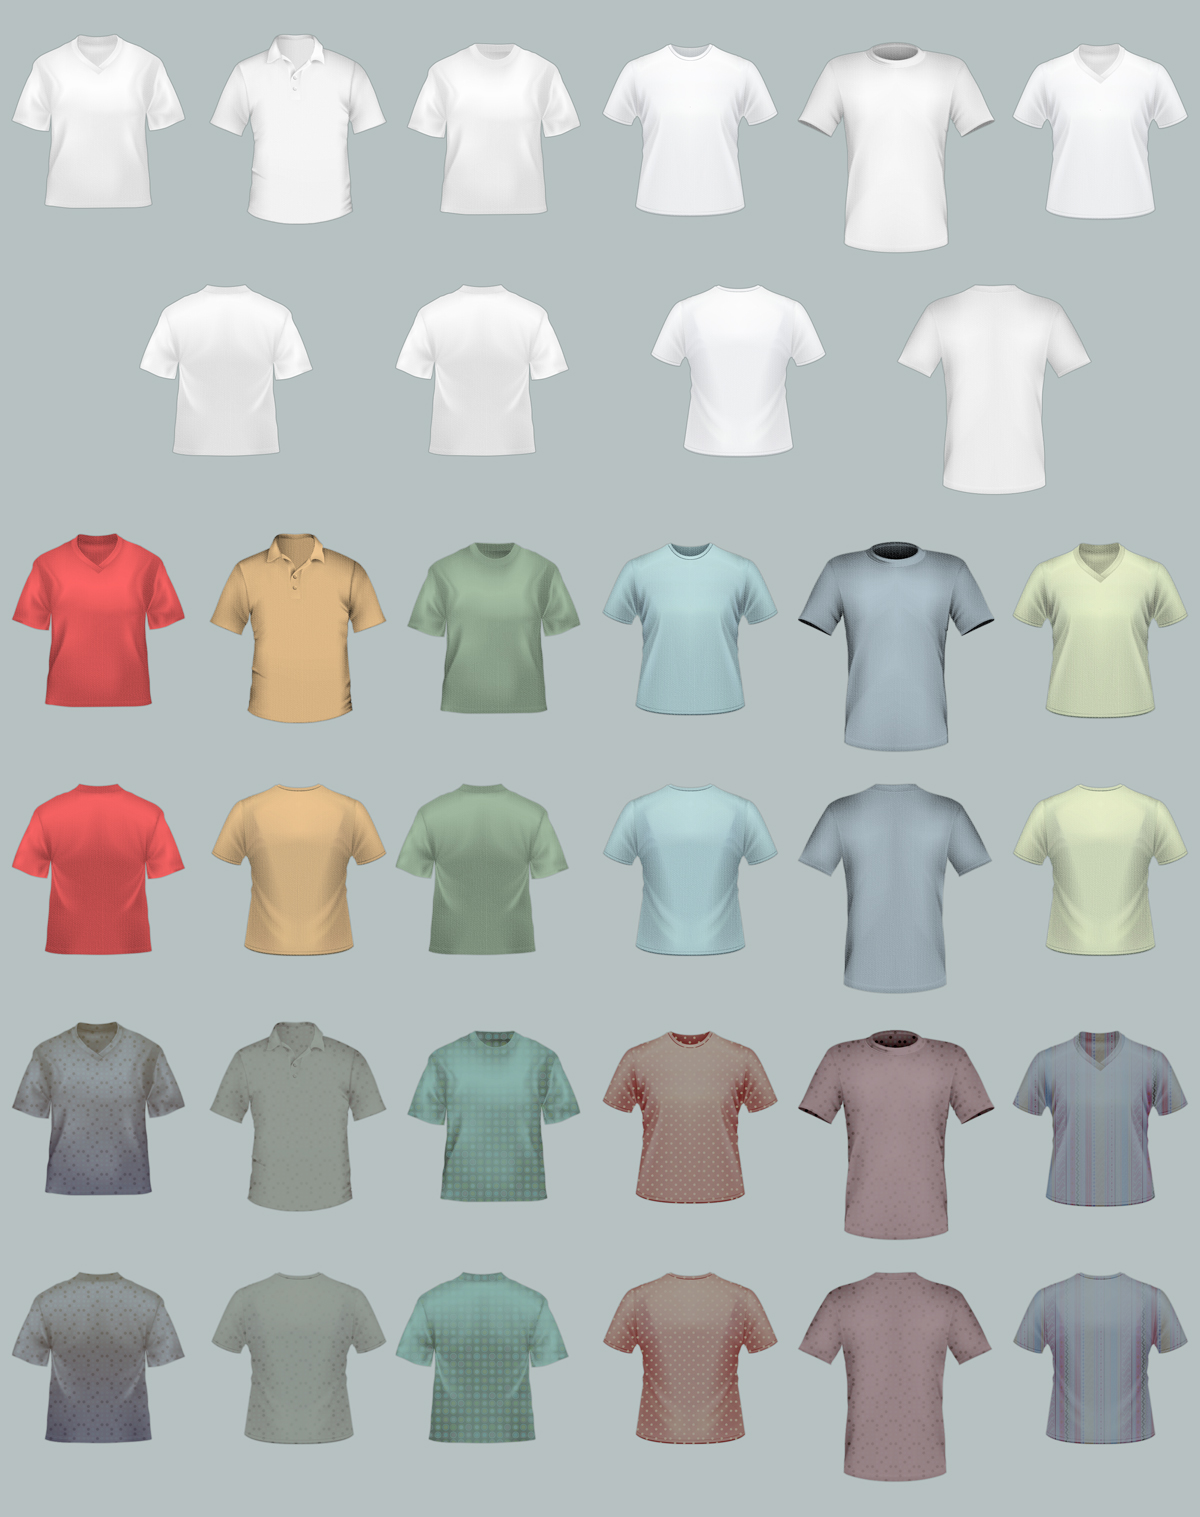 T Shirt Template Pack Psd Vector Files Designshock Shockfamily